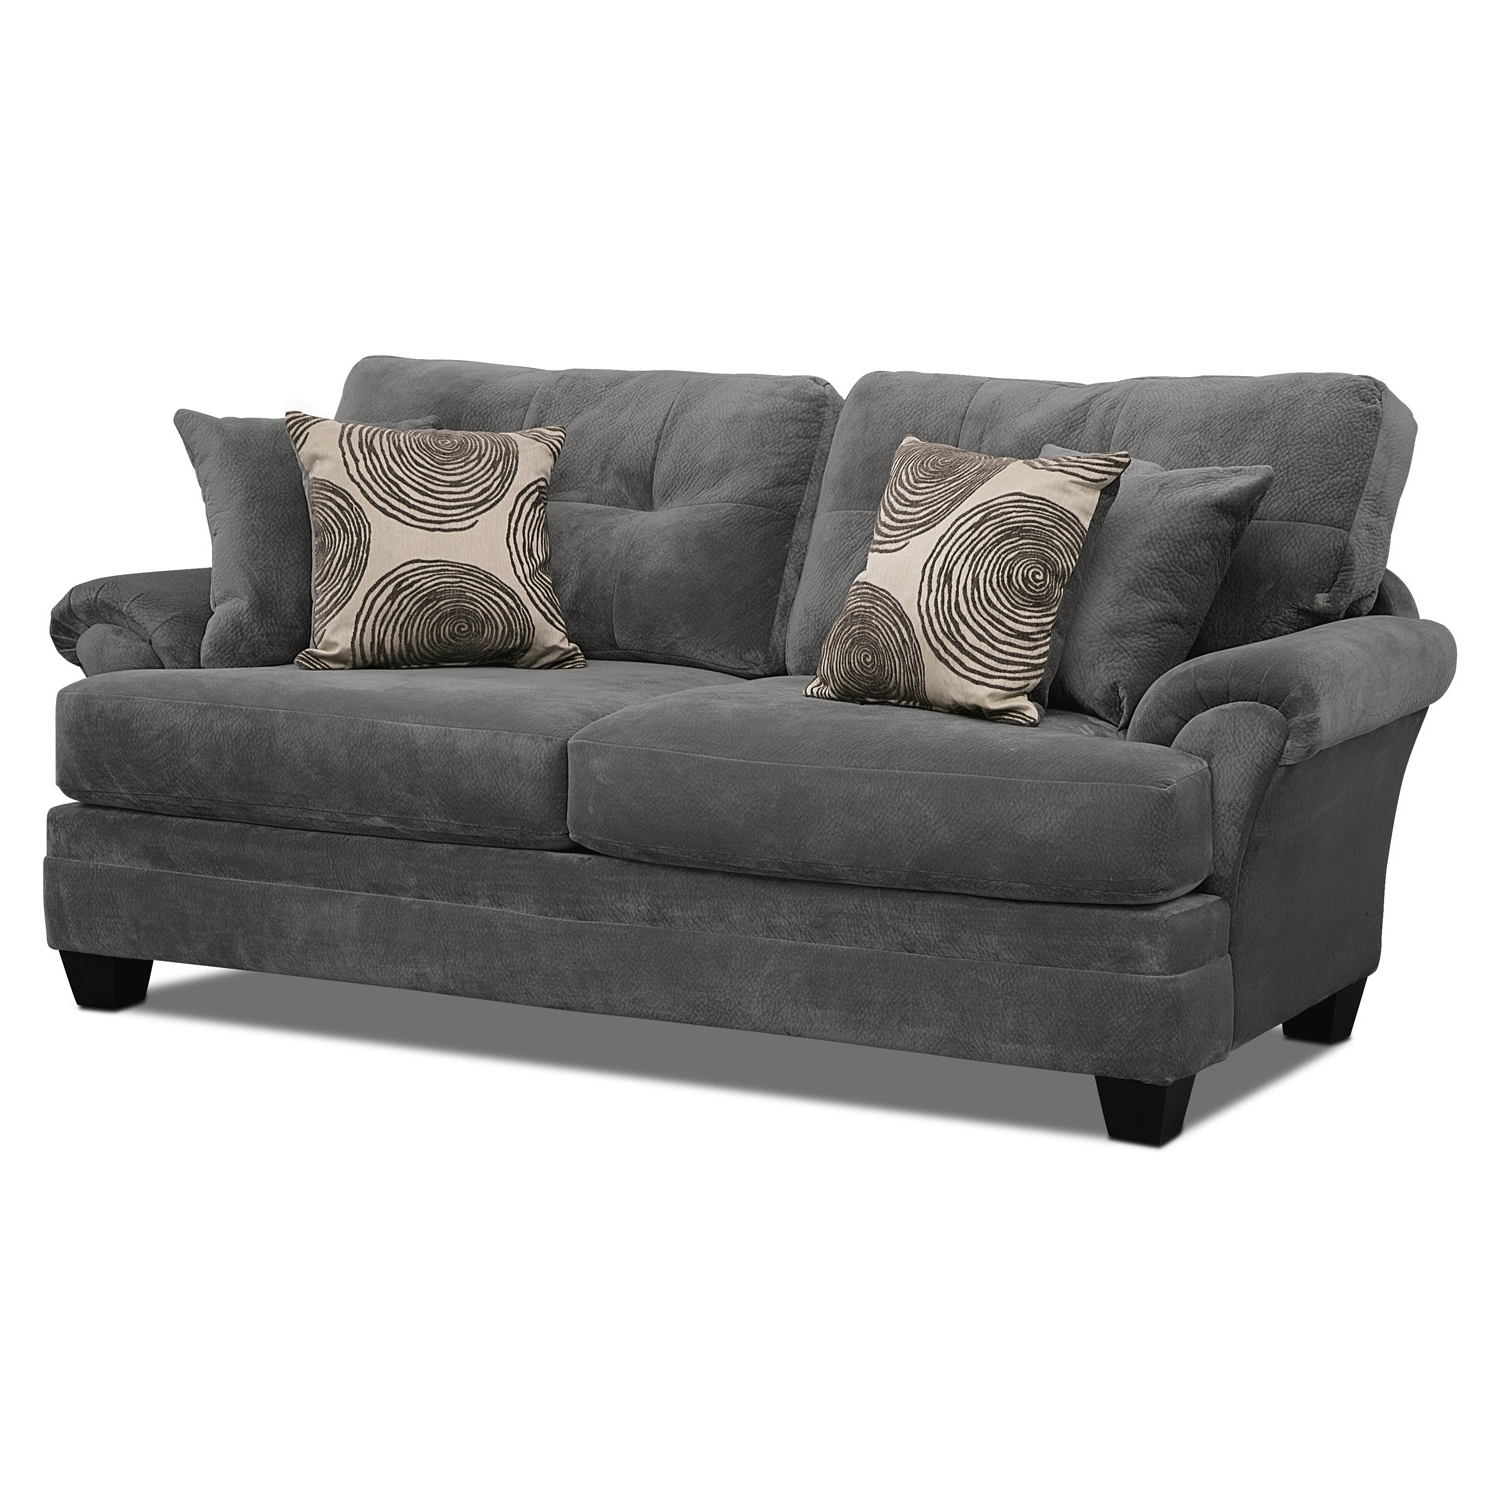 Furniture : Couchtuner X 8 Week Couch To 5K Training Plan Sofa Regarding Famous Greenville Nc Sectional Sofas (View 16 of 20)